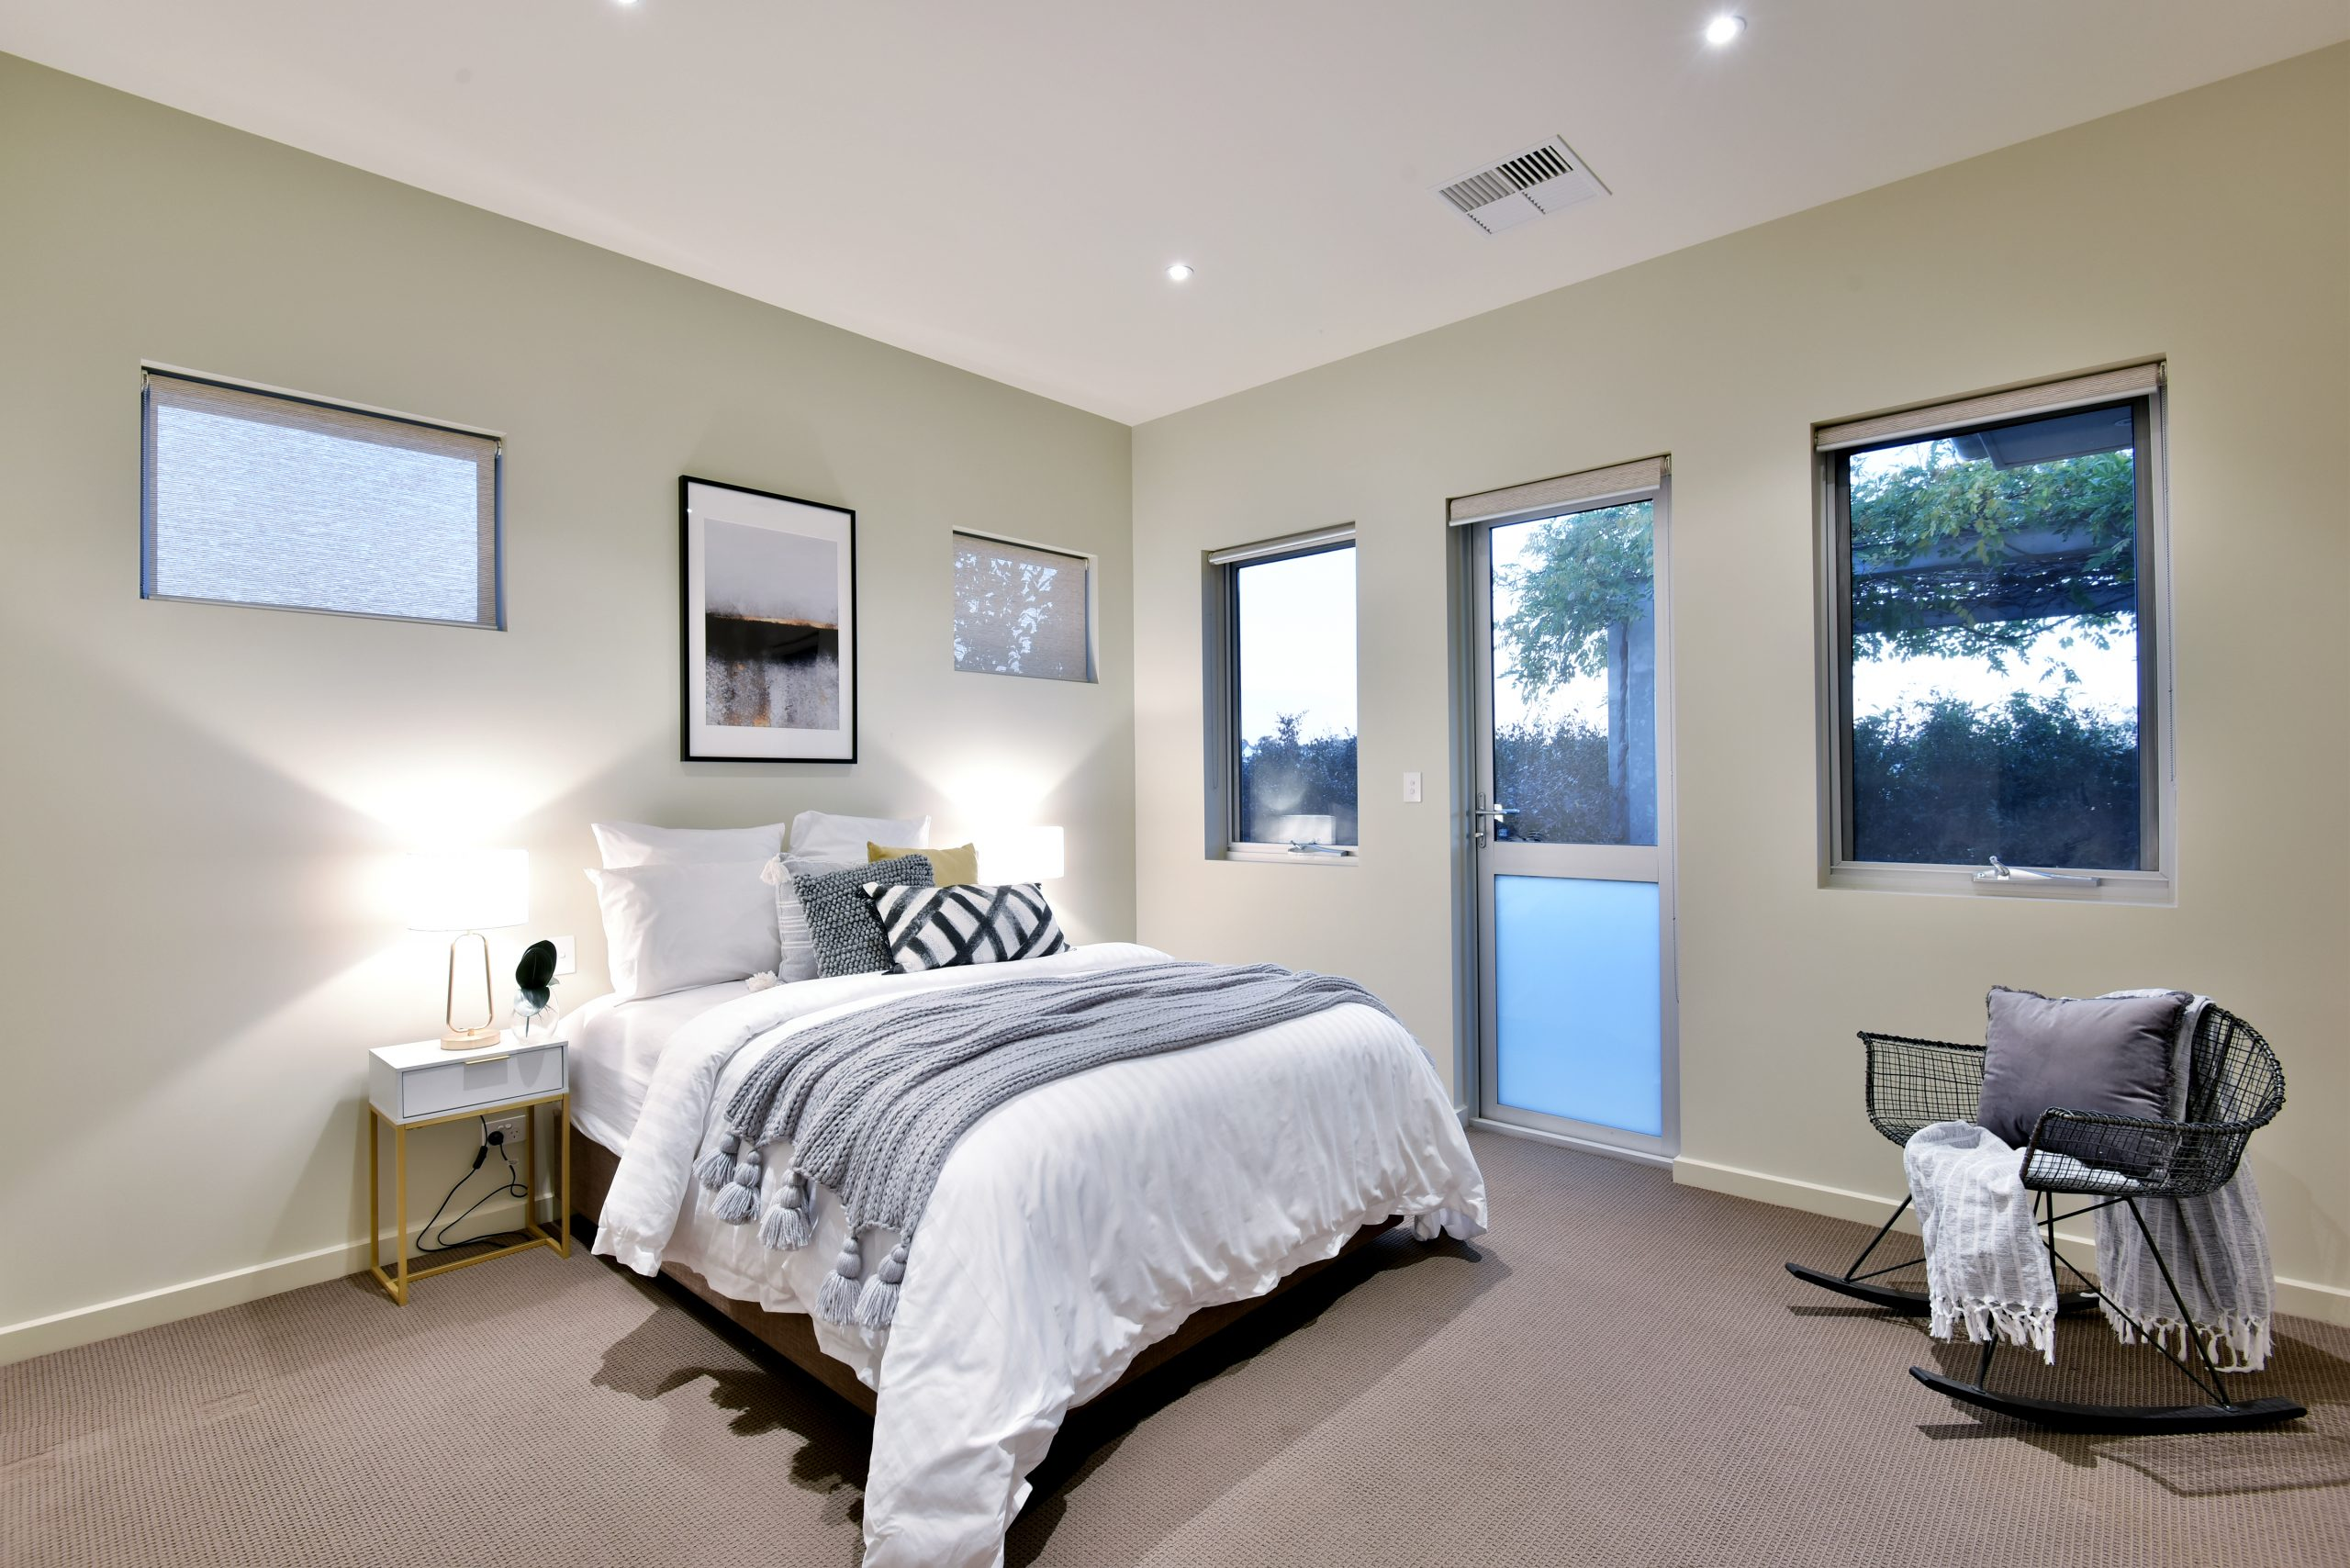 4 ways to transform your home on a budget